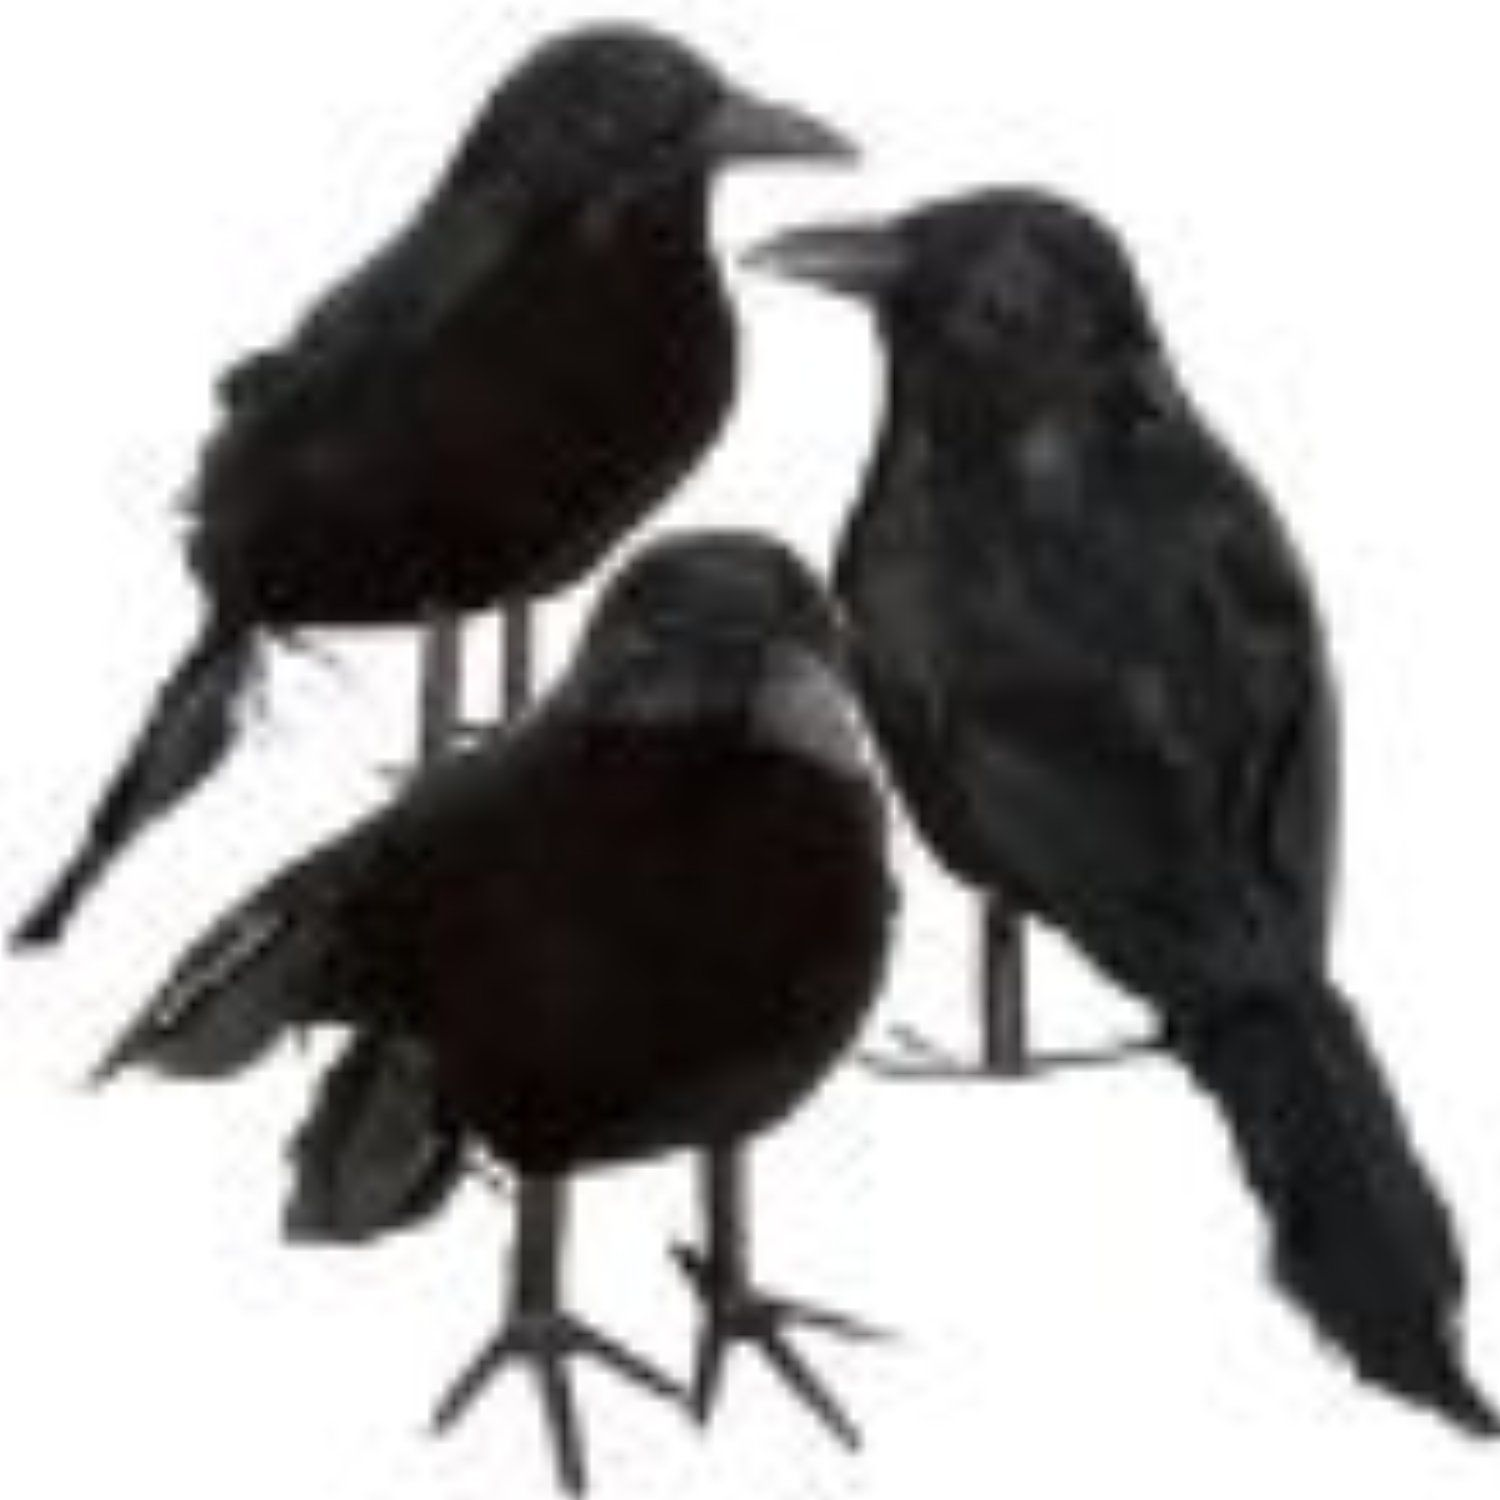 Halloween Black Feathered Crows Ravens Props Decor Halloween Decorations Birds Set Of 6 See Th Spooky Halloween Costumes Halloween Shopping Halloween Mantel